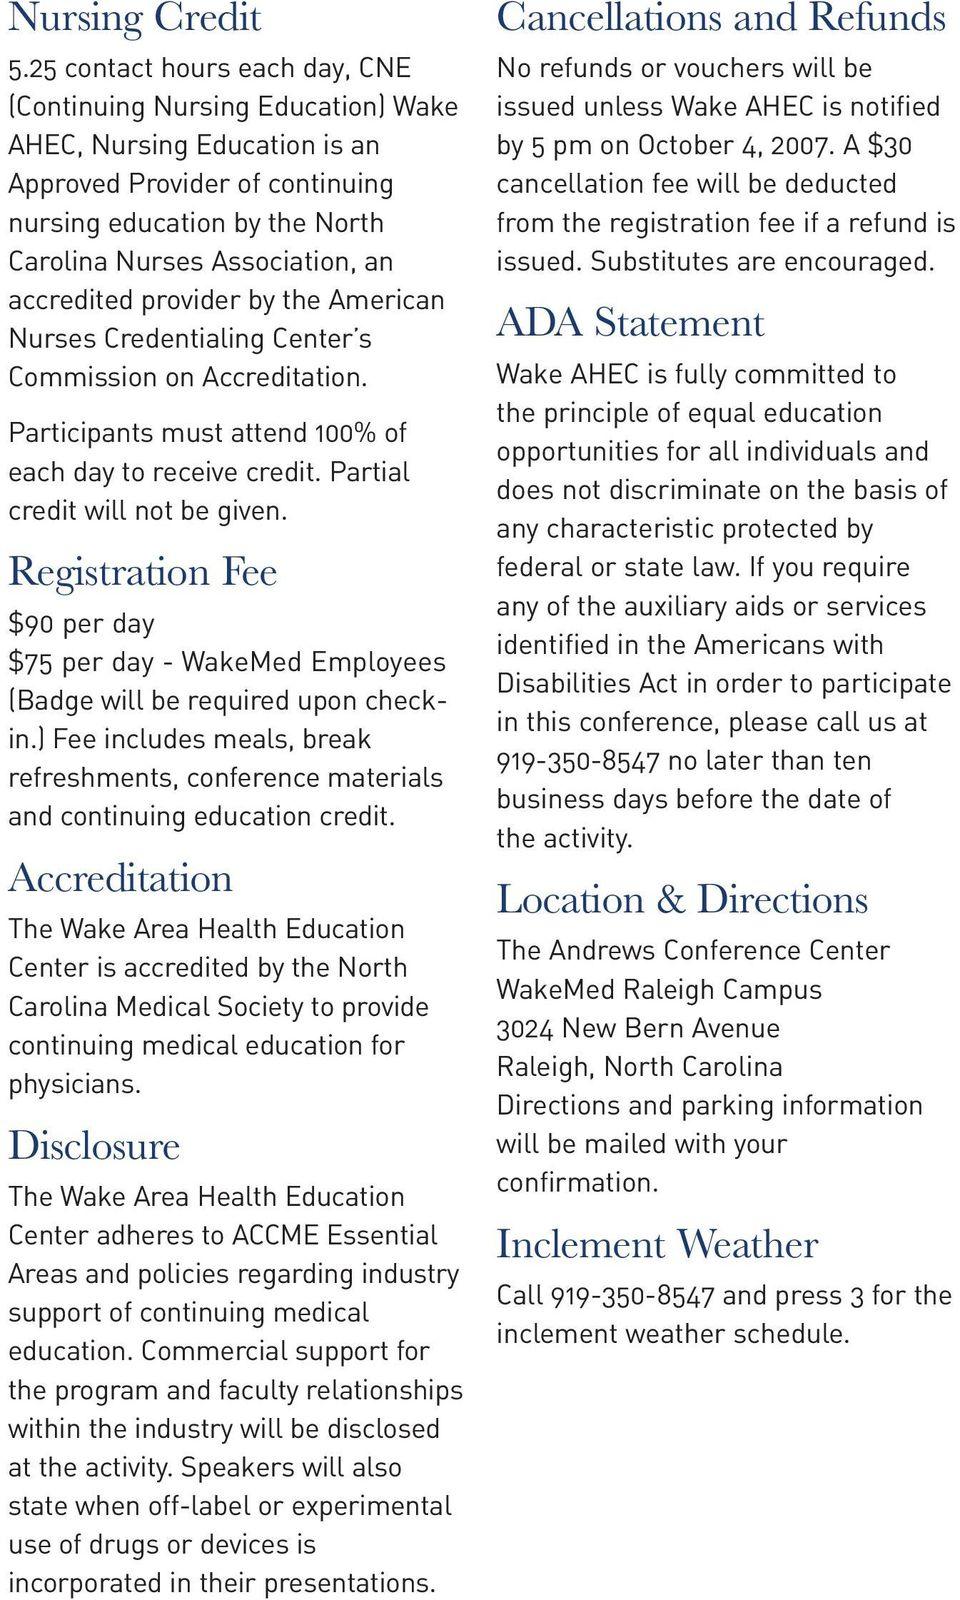 accredited provider by the American Nurses Credentialing Center s Commission on Accreditation. Participants must attend 100% of each day to receive credit. Partial credit will not be given.